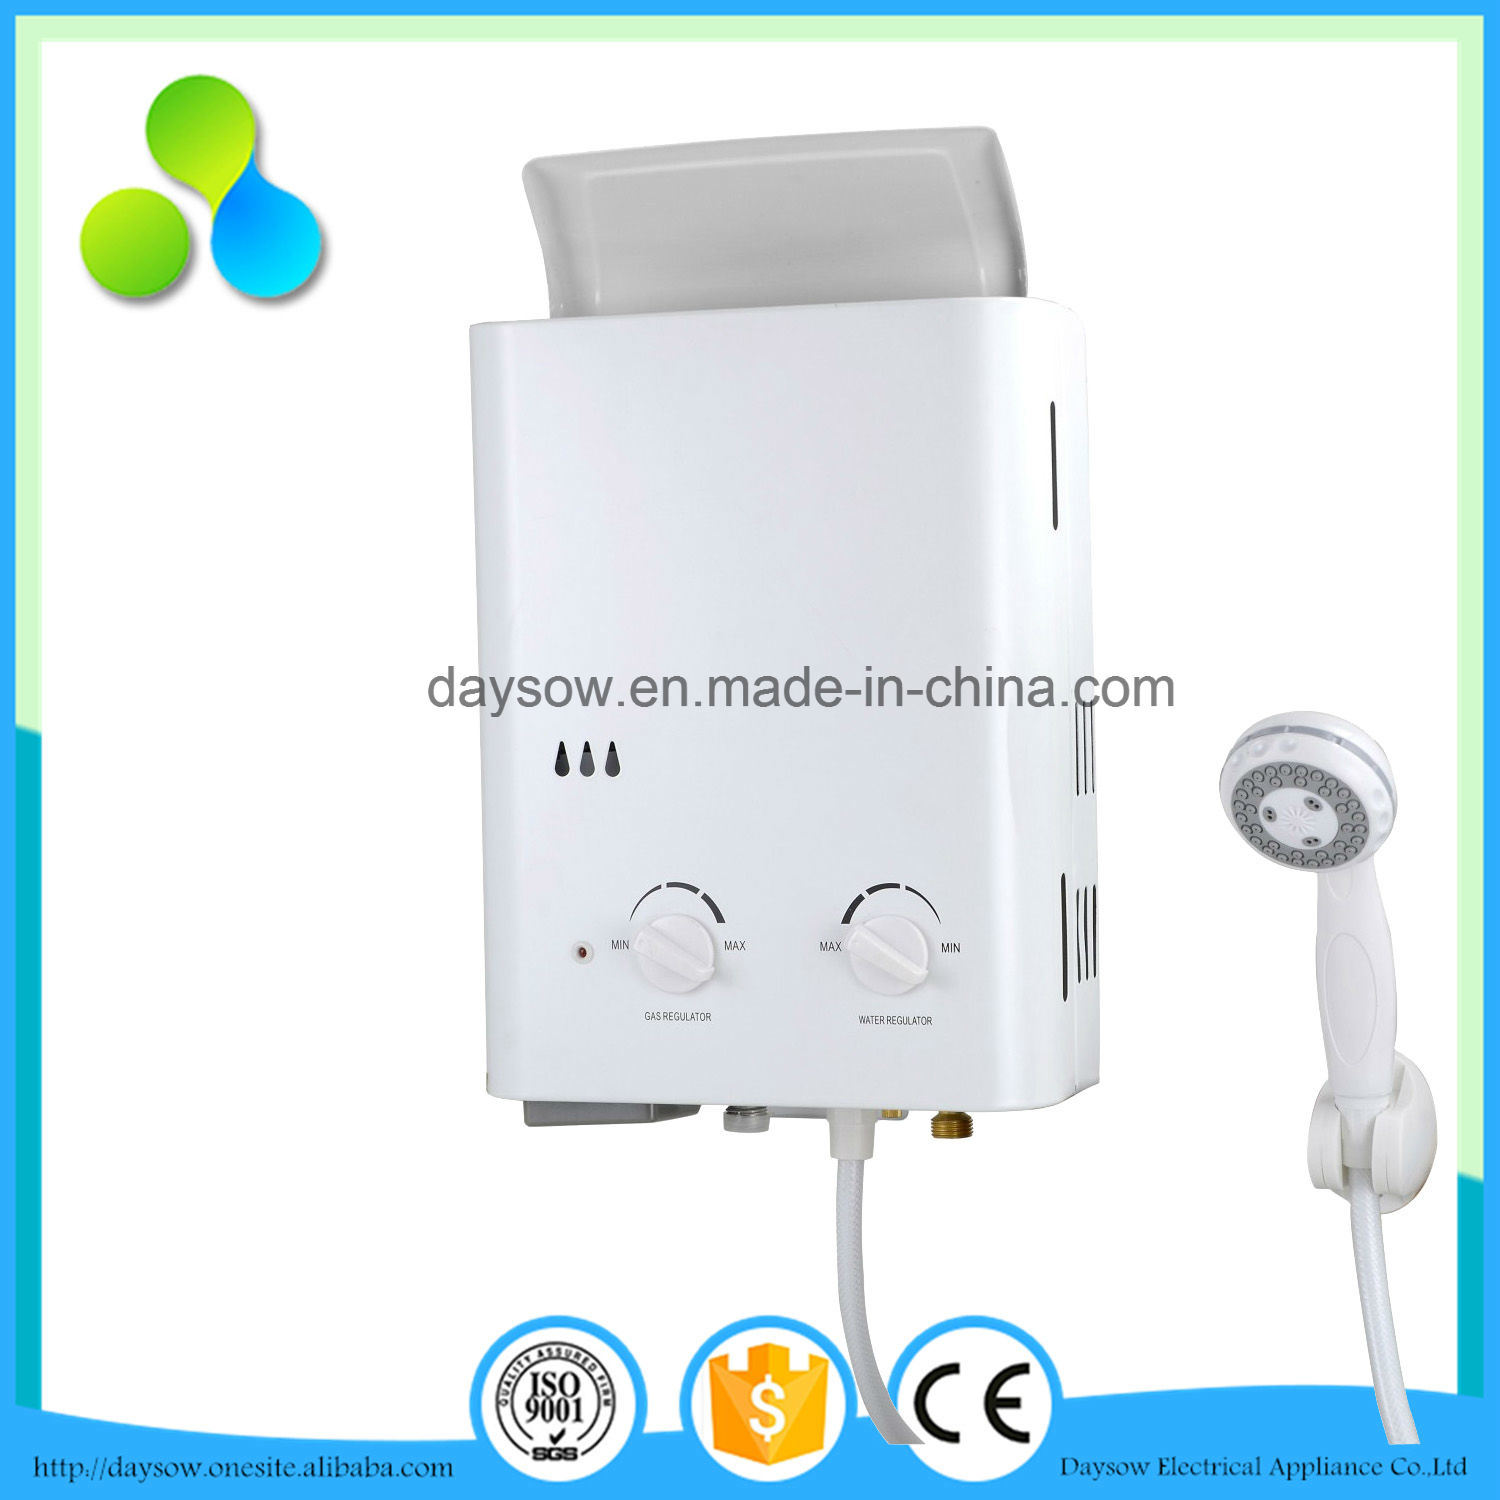 Low Water Pressure Gas Water Heater, Gas Geyser